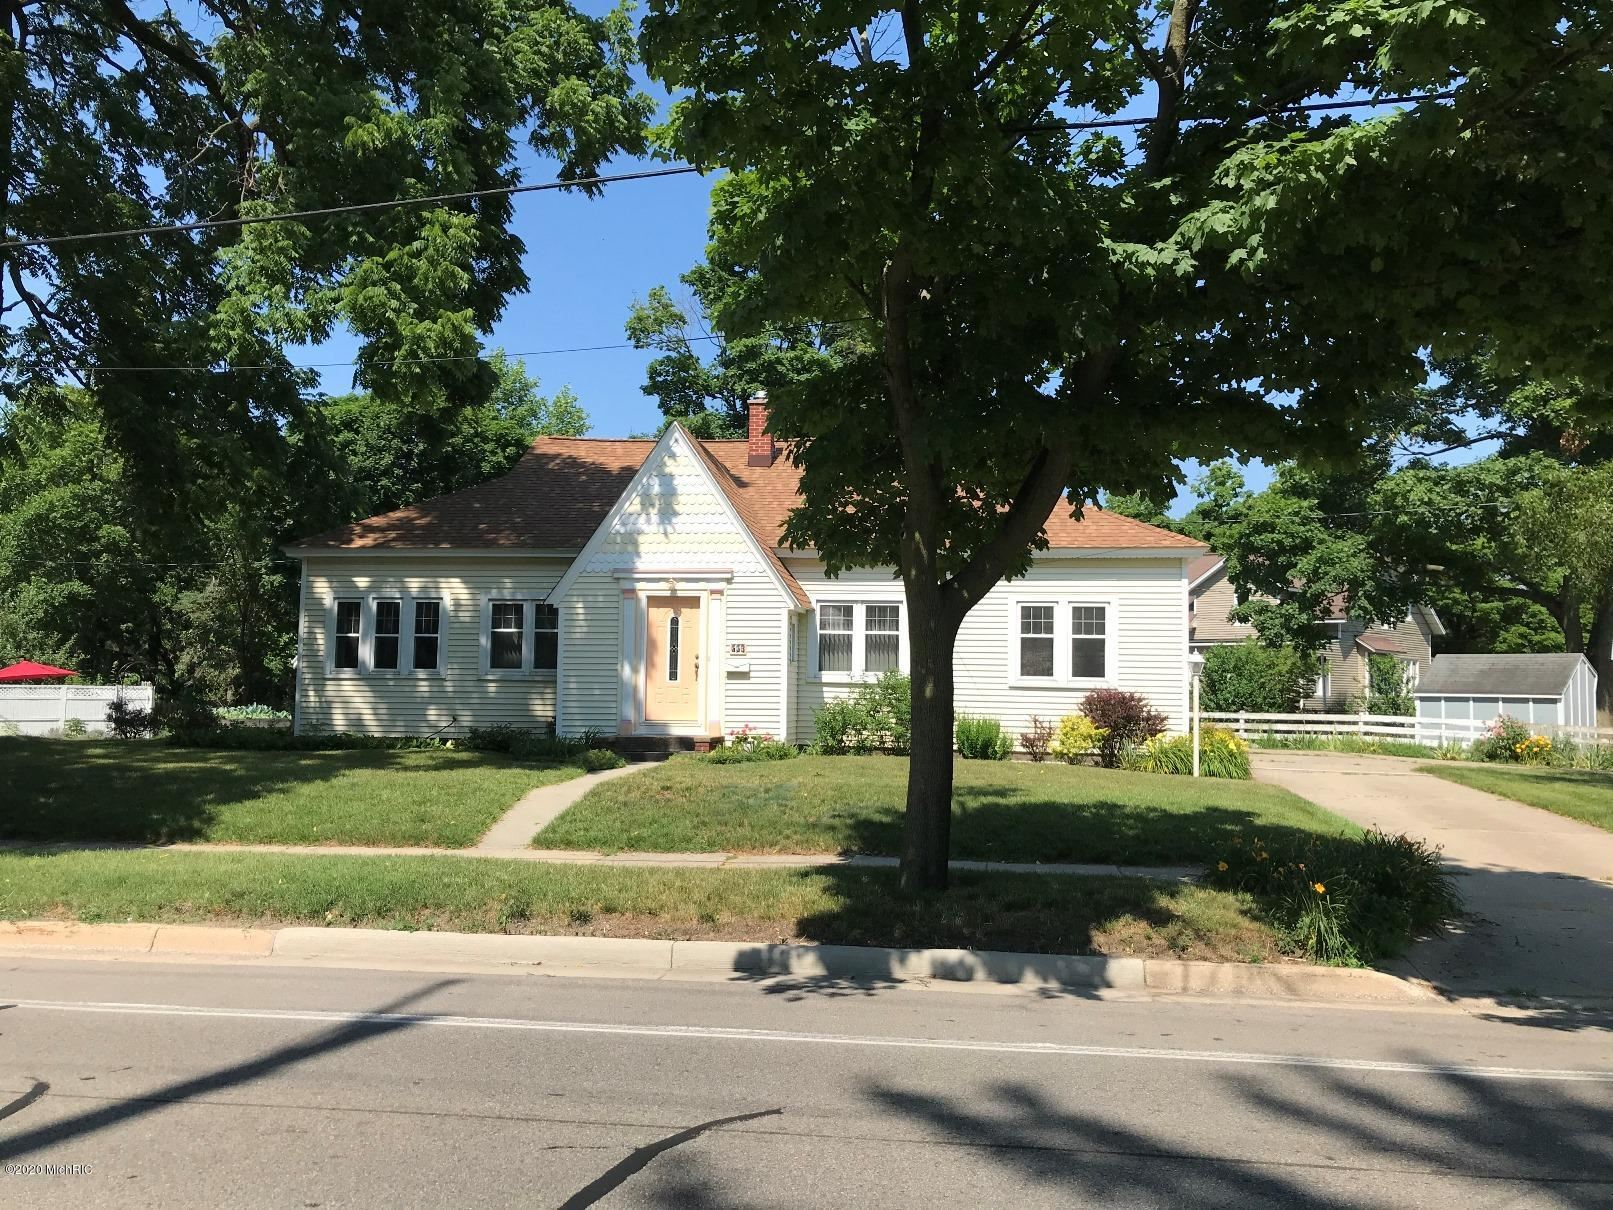 Photo of 553 State Street, Holland, MI 49423 (MLS # 20025600)